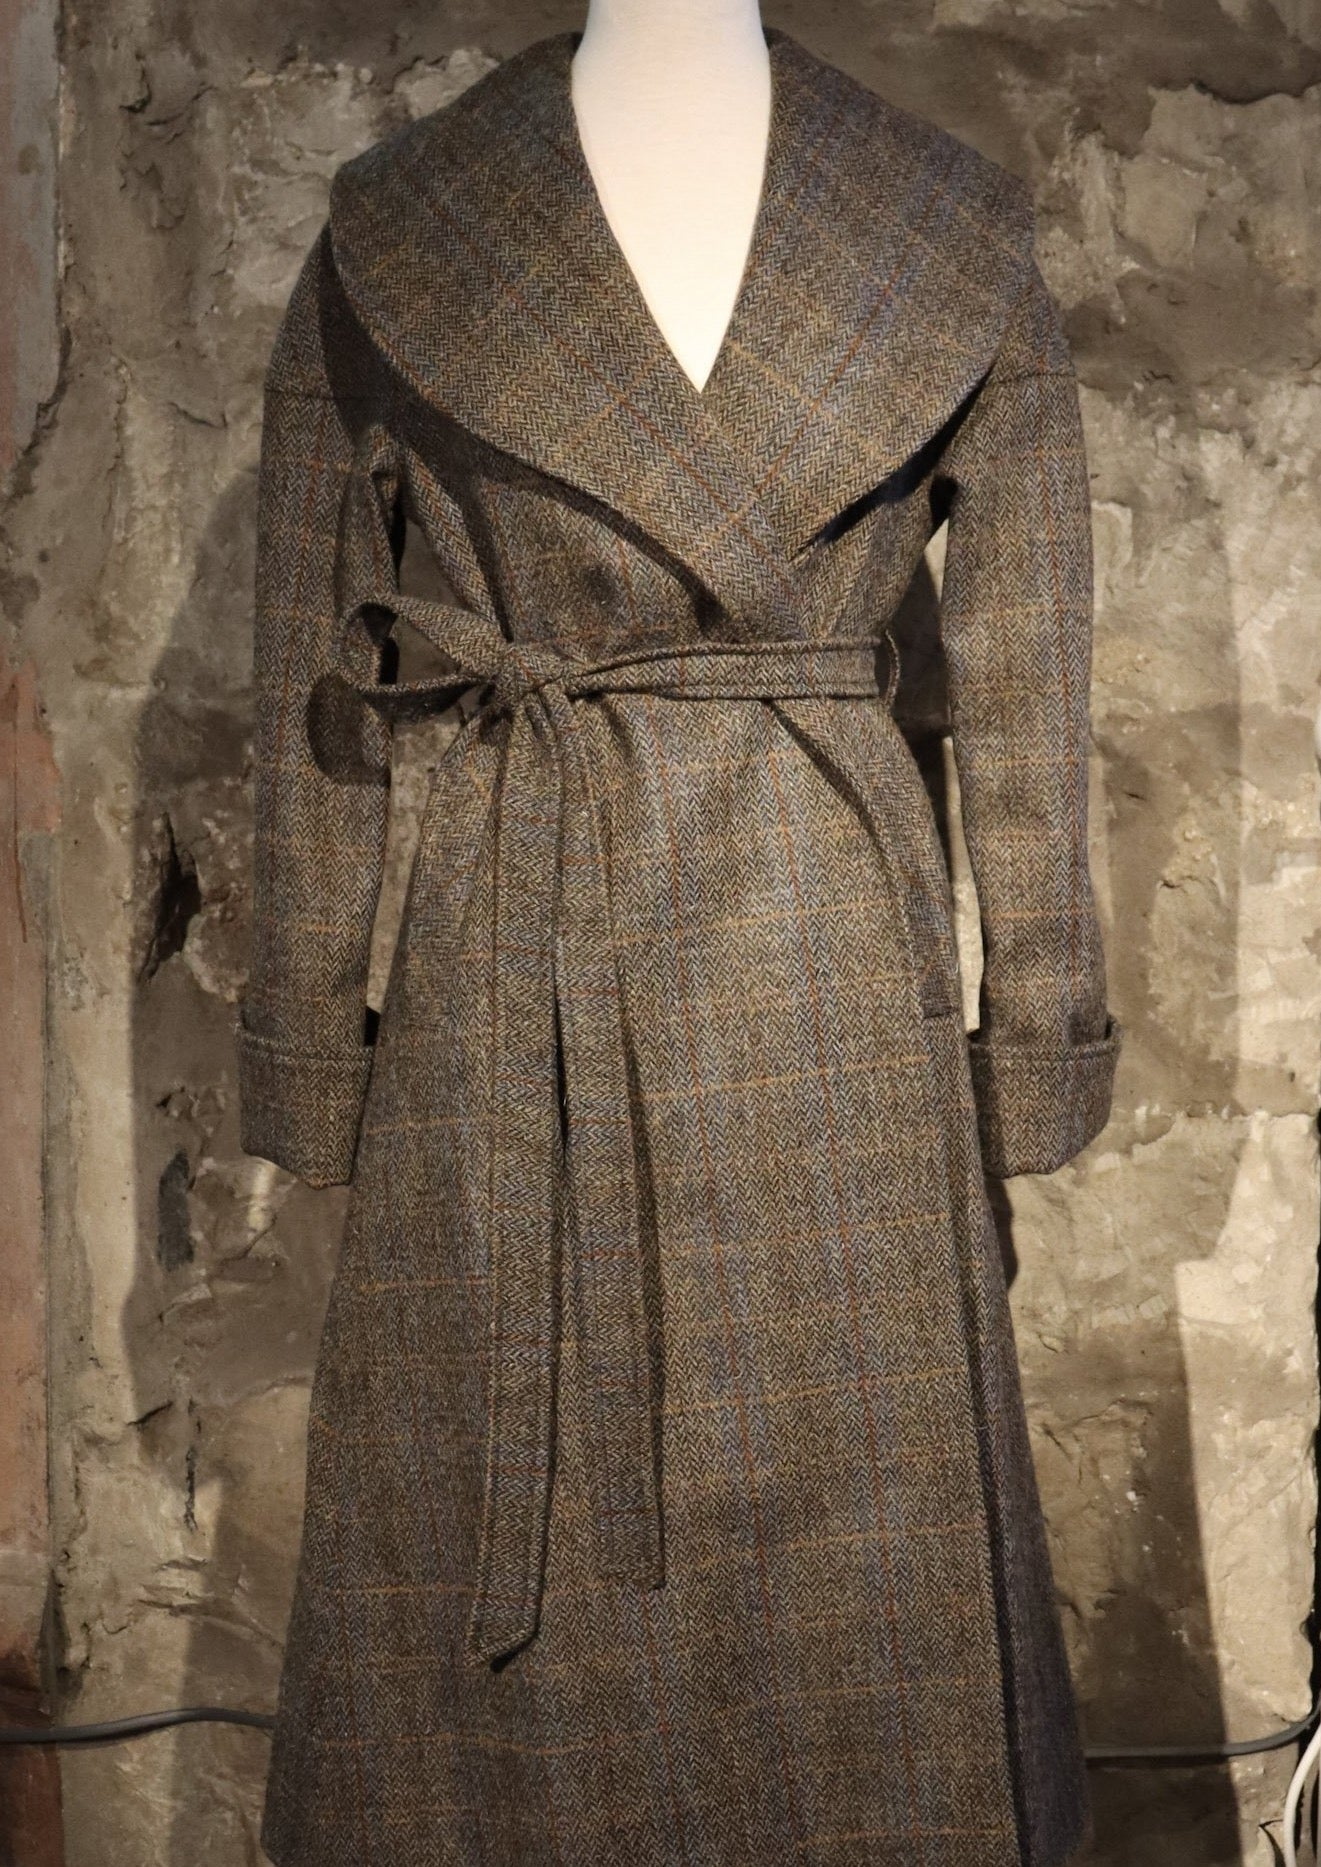 Cora Coat in Harris Tweed handmade in Scotland